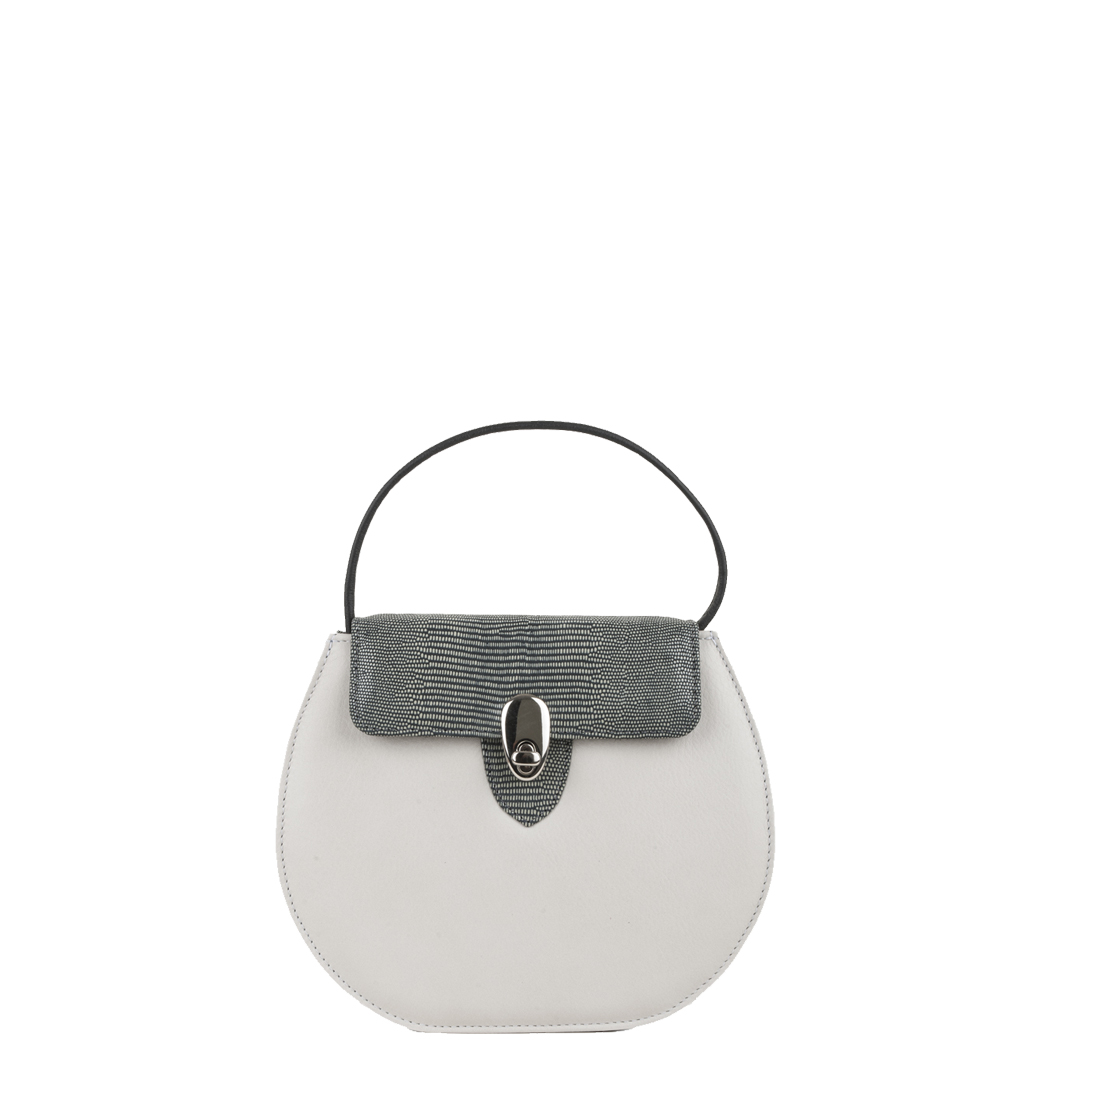 Mae Polvere Leather Shoulder Bag